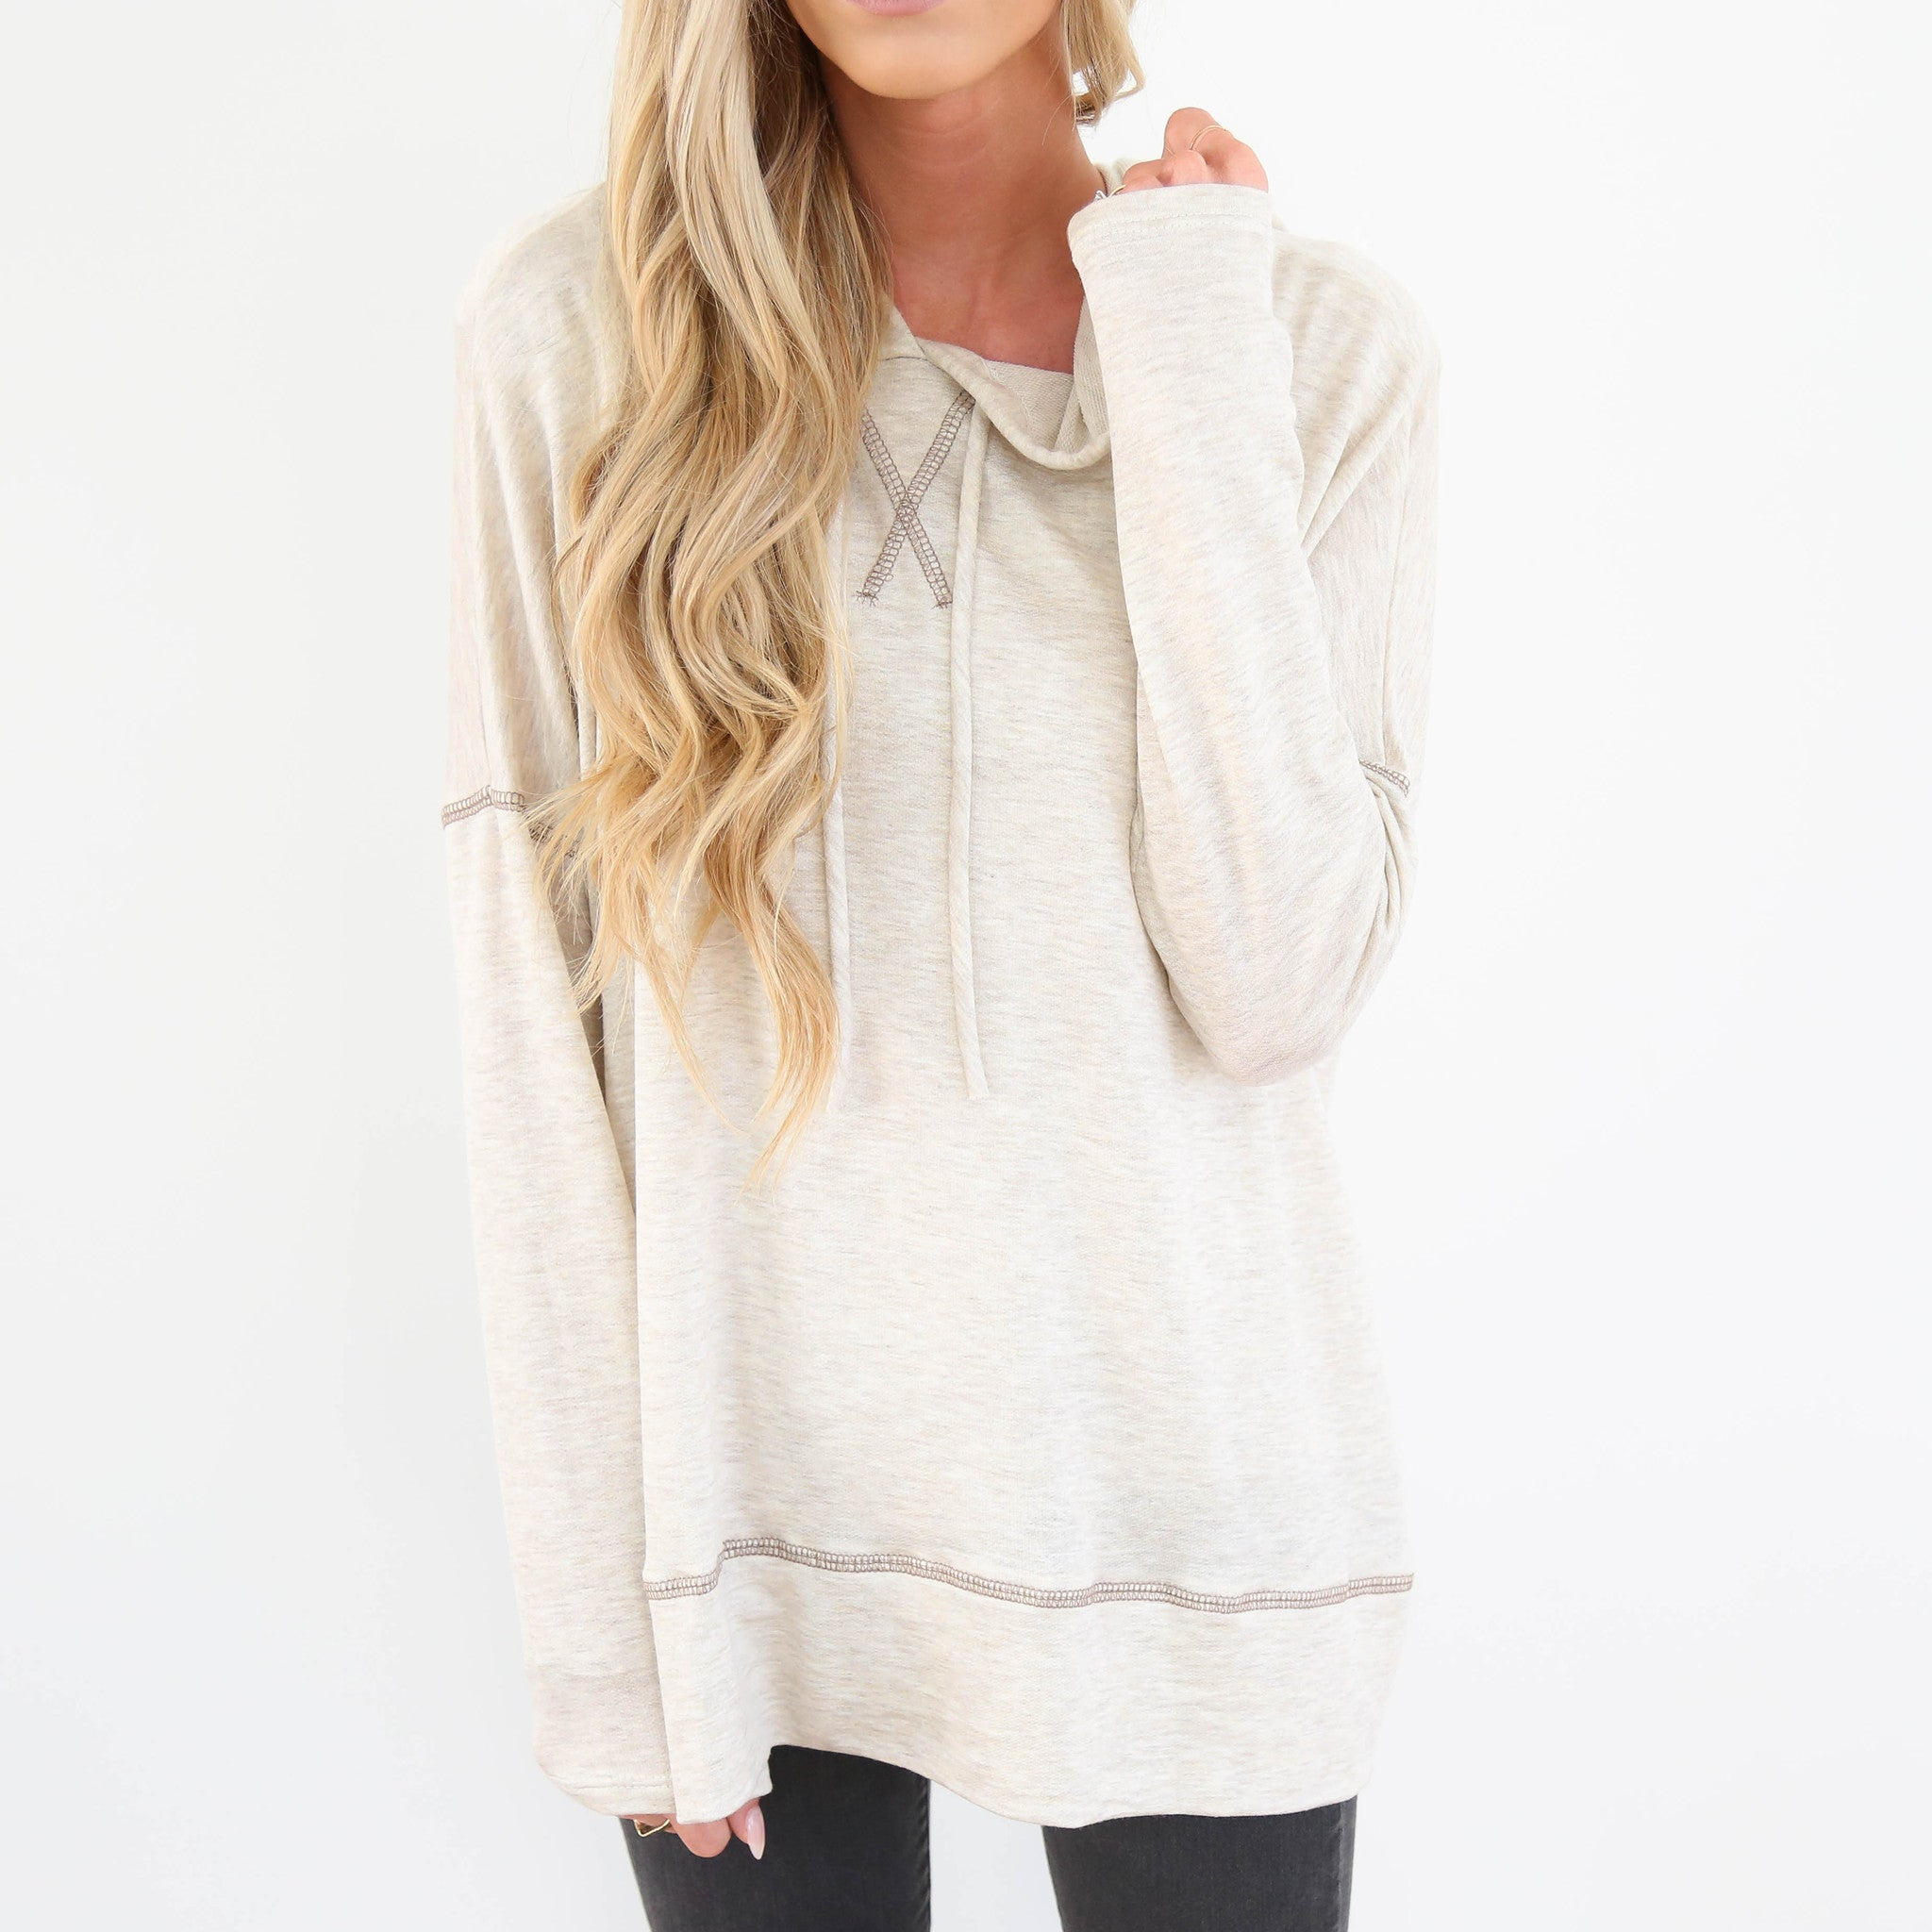 Cozy Autumn Hoodie in Cream